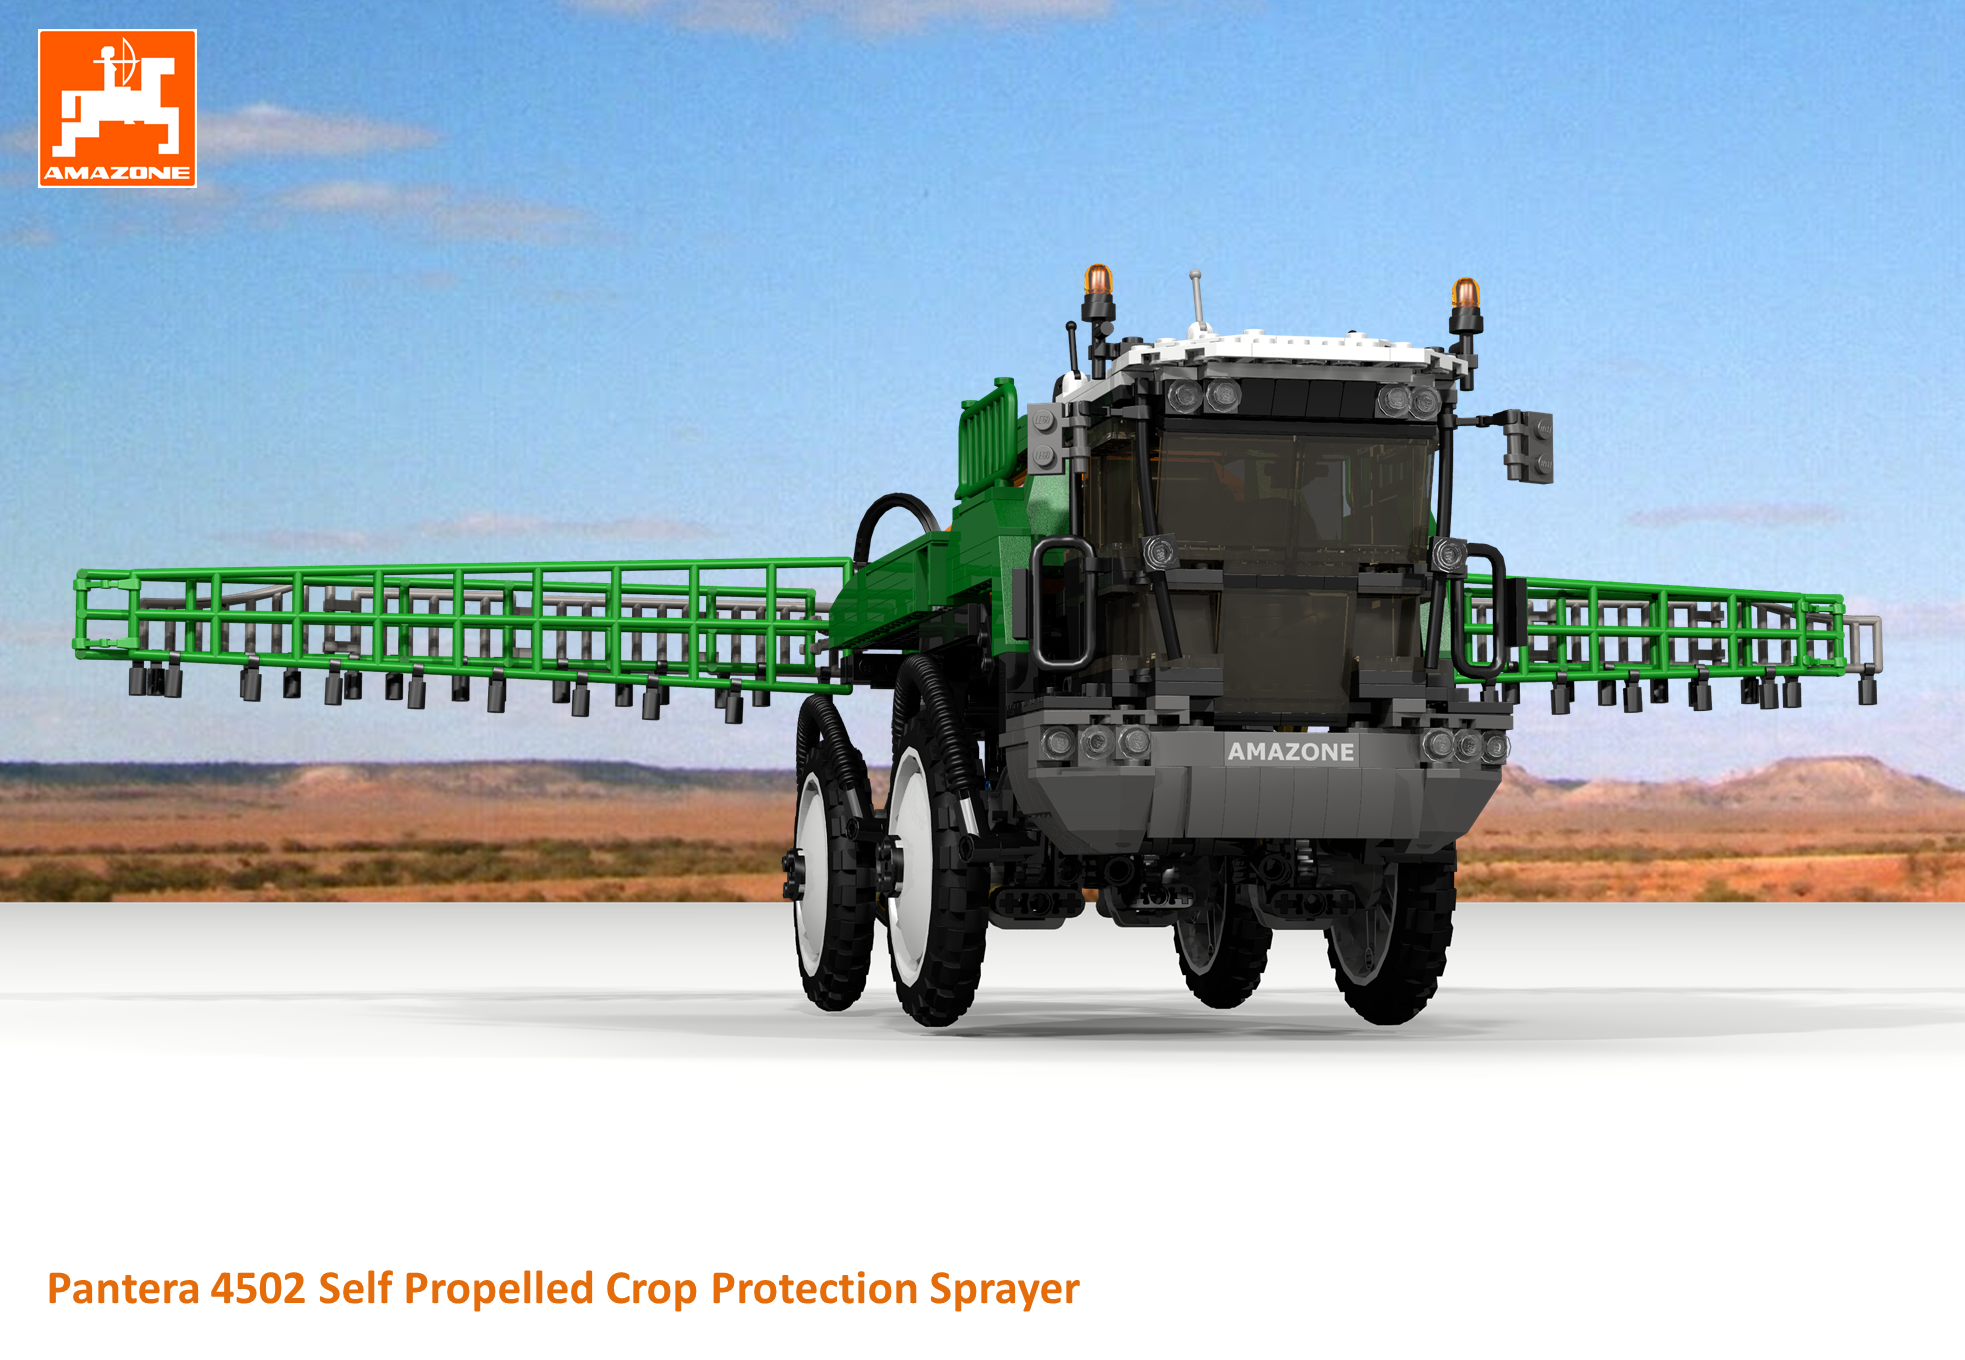 amazone_pantera_4502_self-propelled_sprayer_01.png